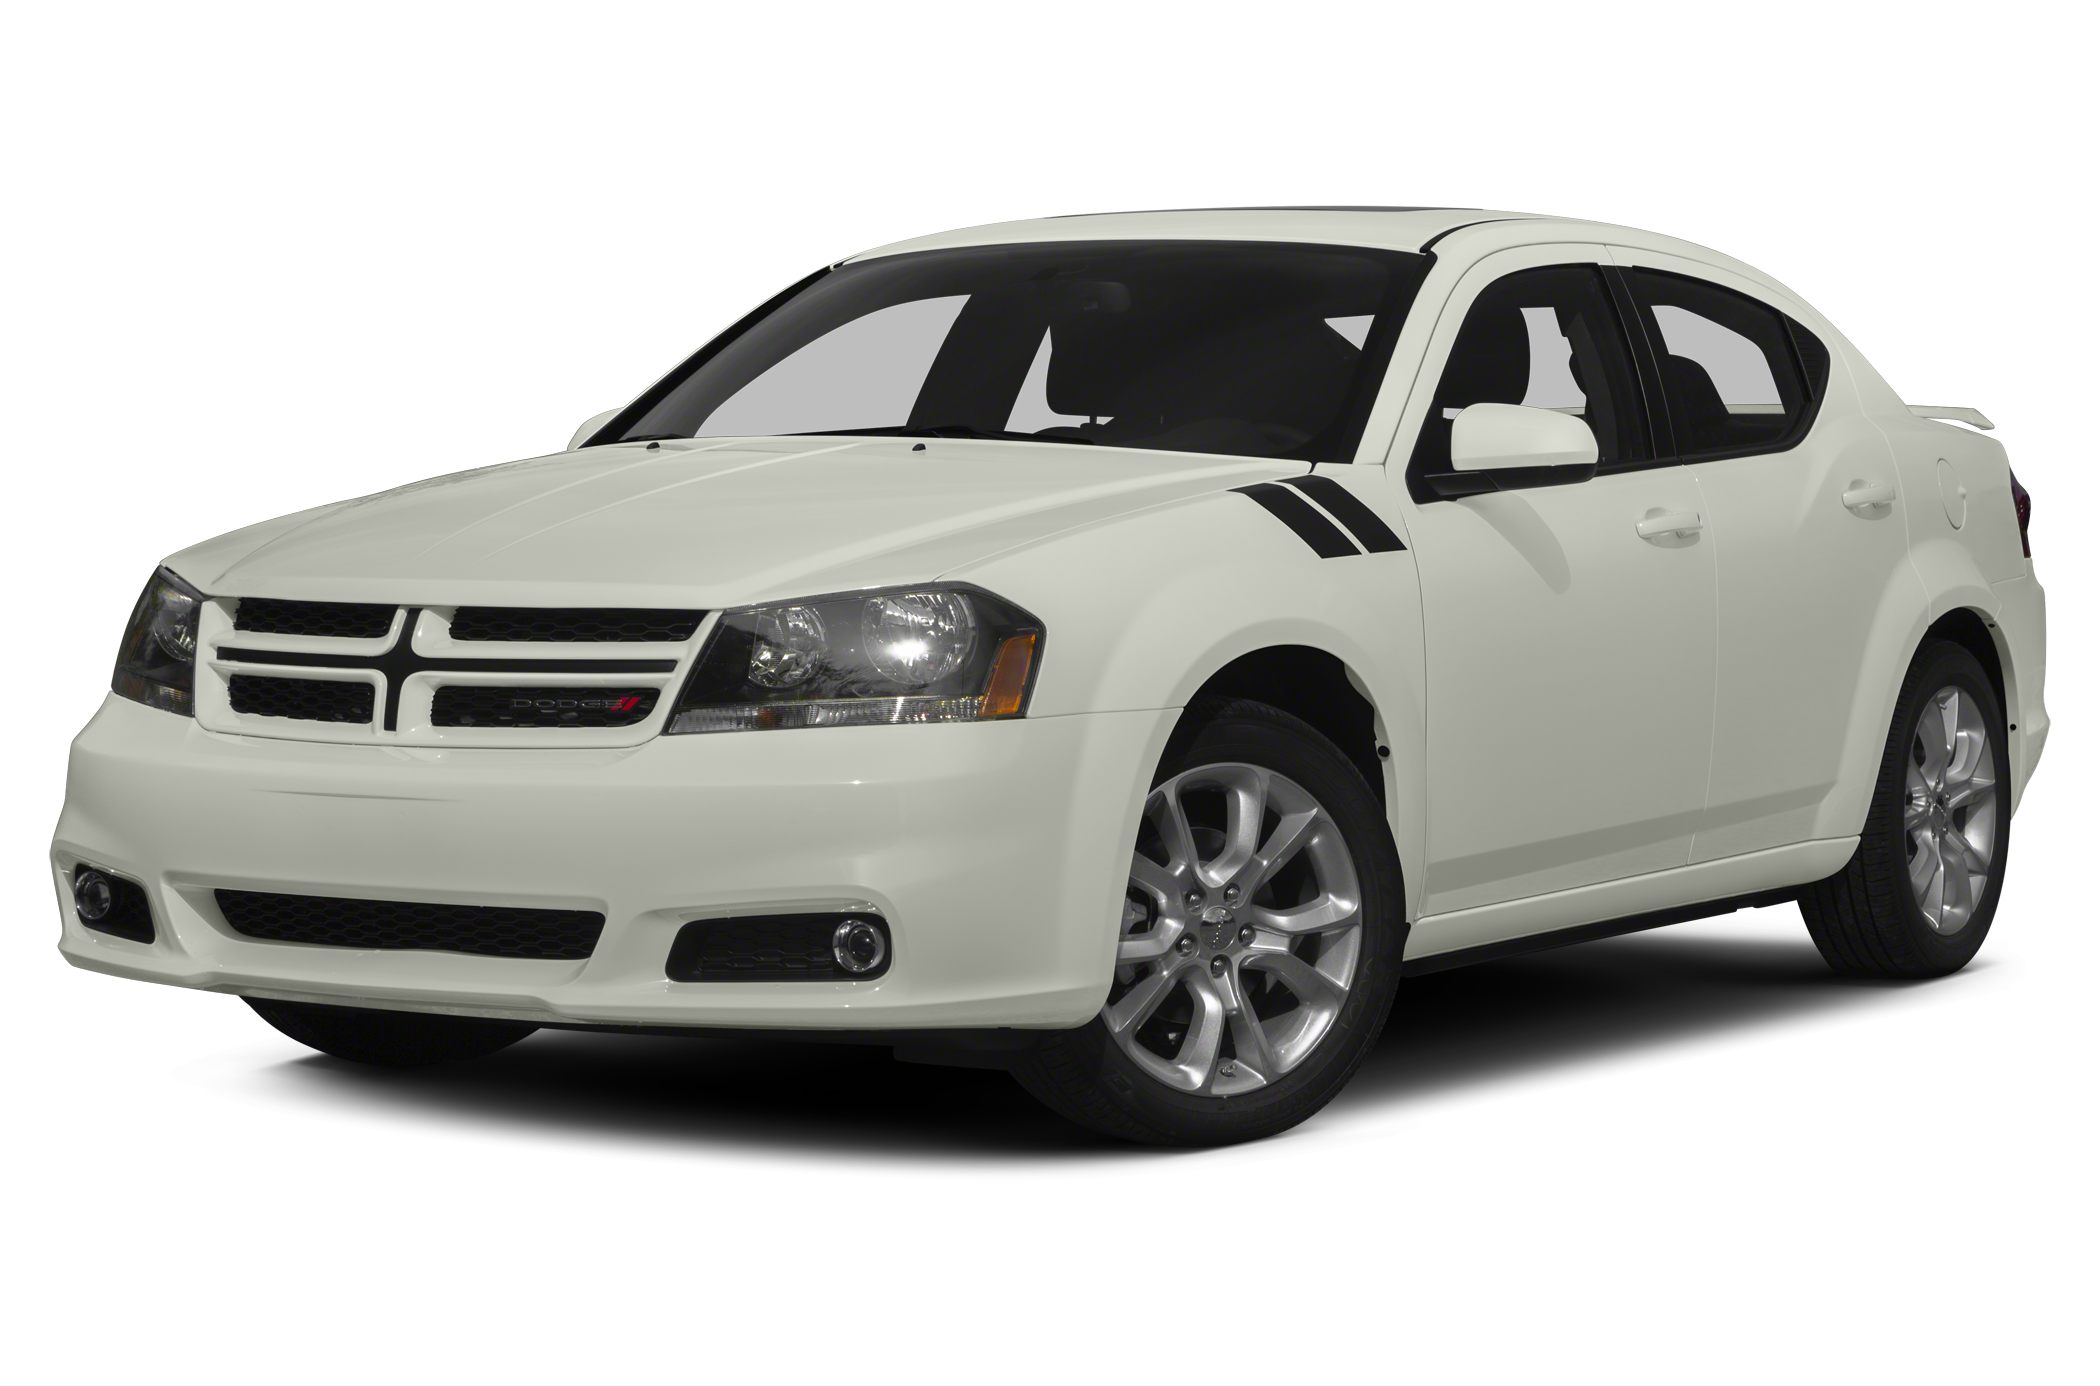 2013 Dodge Avenger R/T Sedan for sale in Martinsville for $17,500 with 36,926 miles